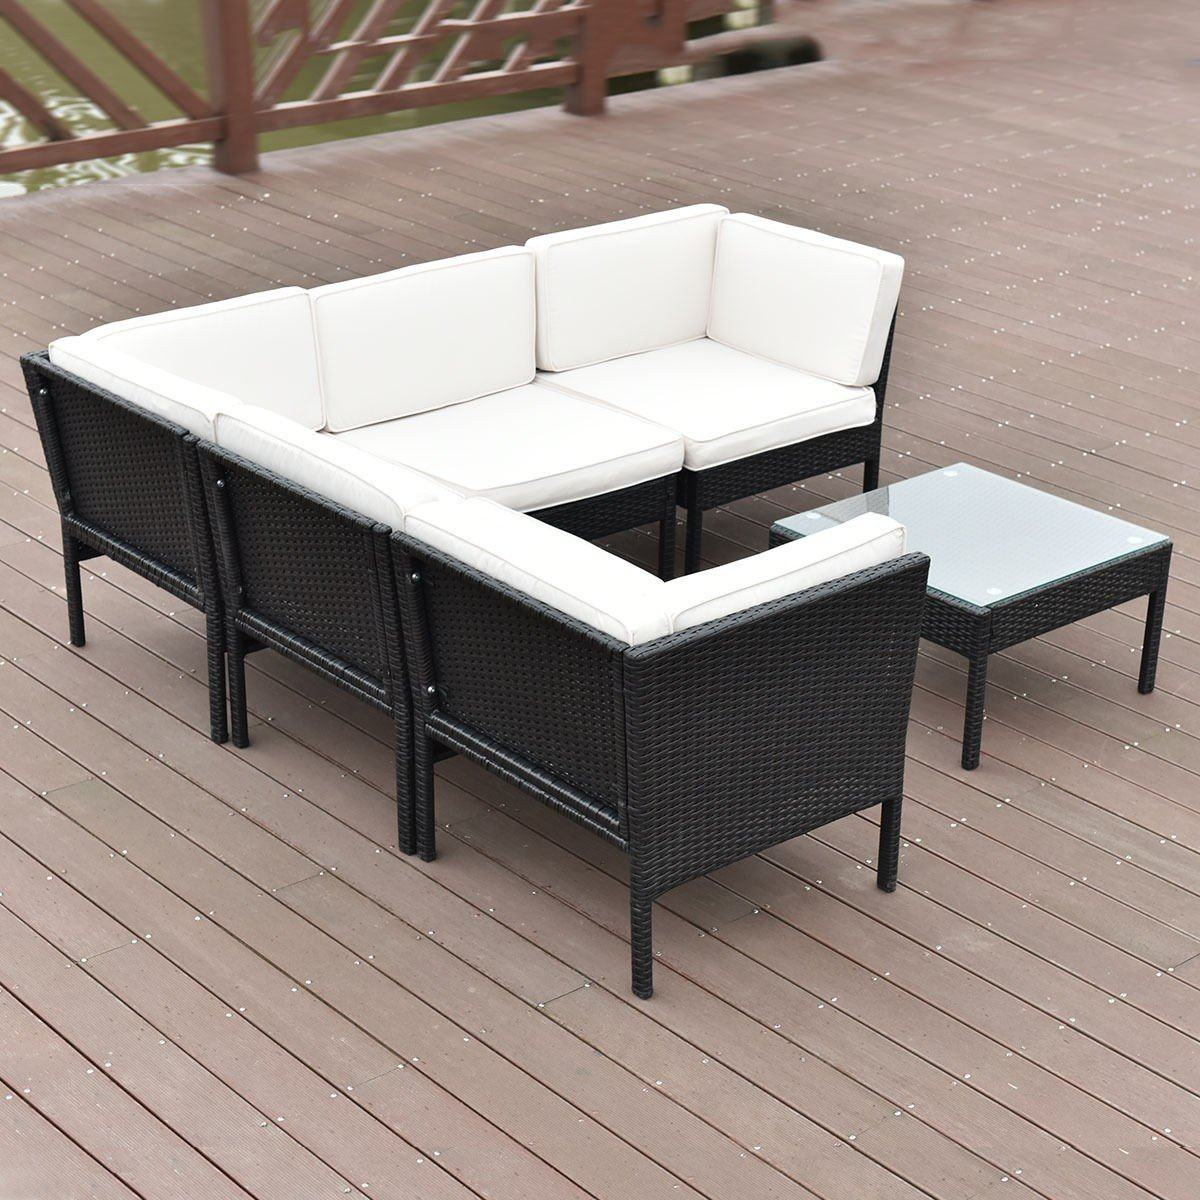 6 pcs Right Angle Rattan Wicker Patio Furniture Set By Choice Products